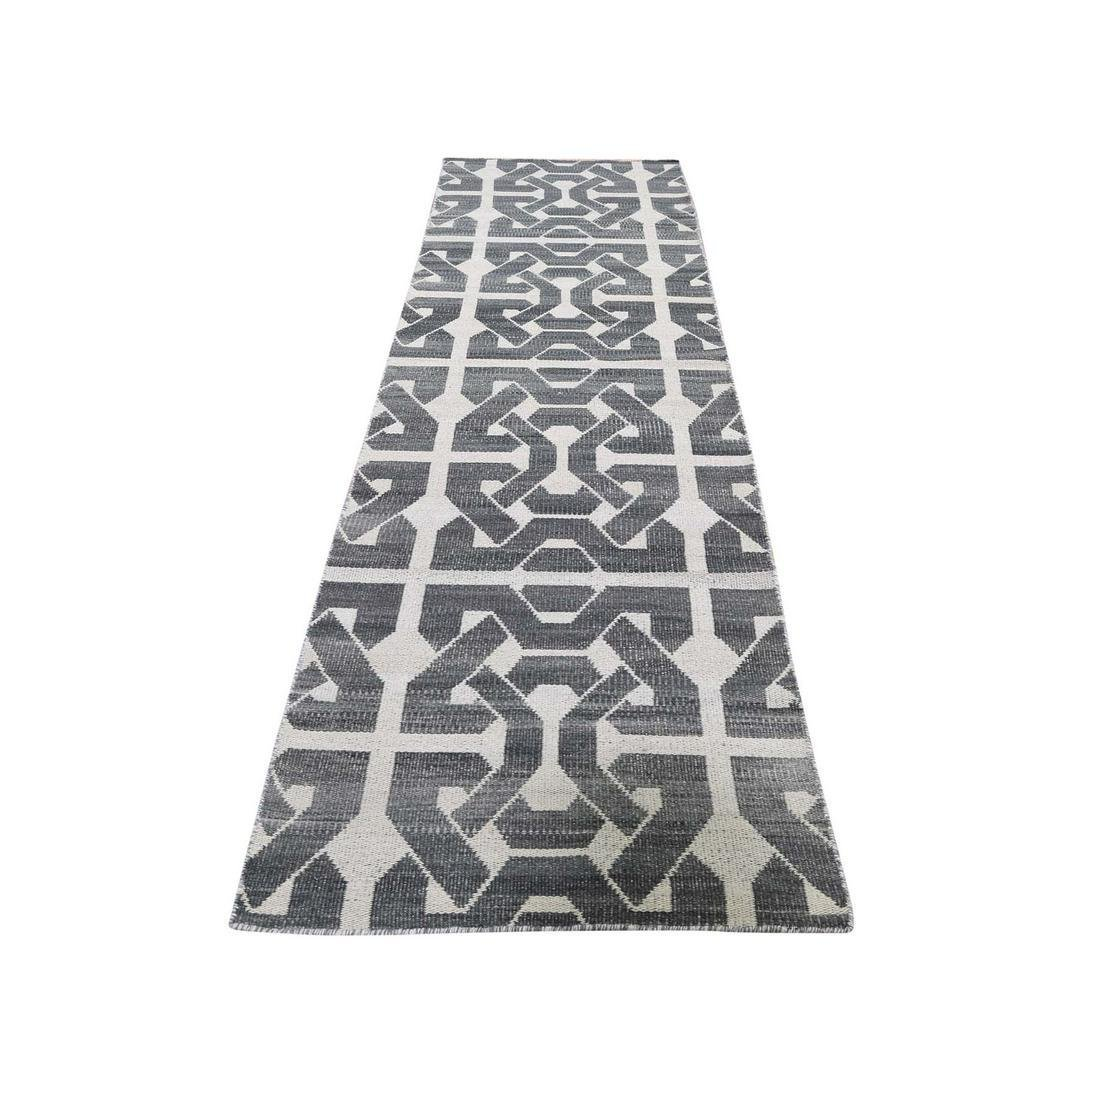 Hand Woven Flat Weave Pure Wool Reversible Kilim Runner